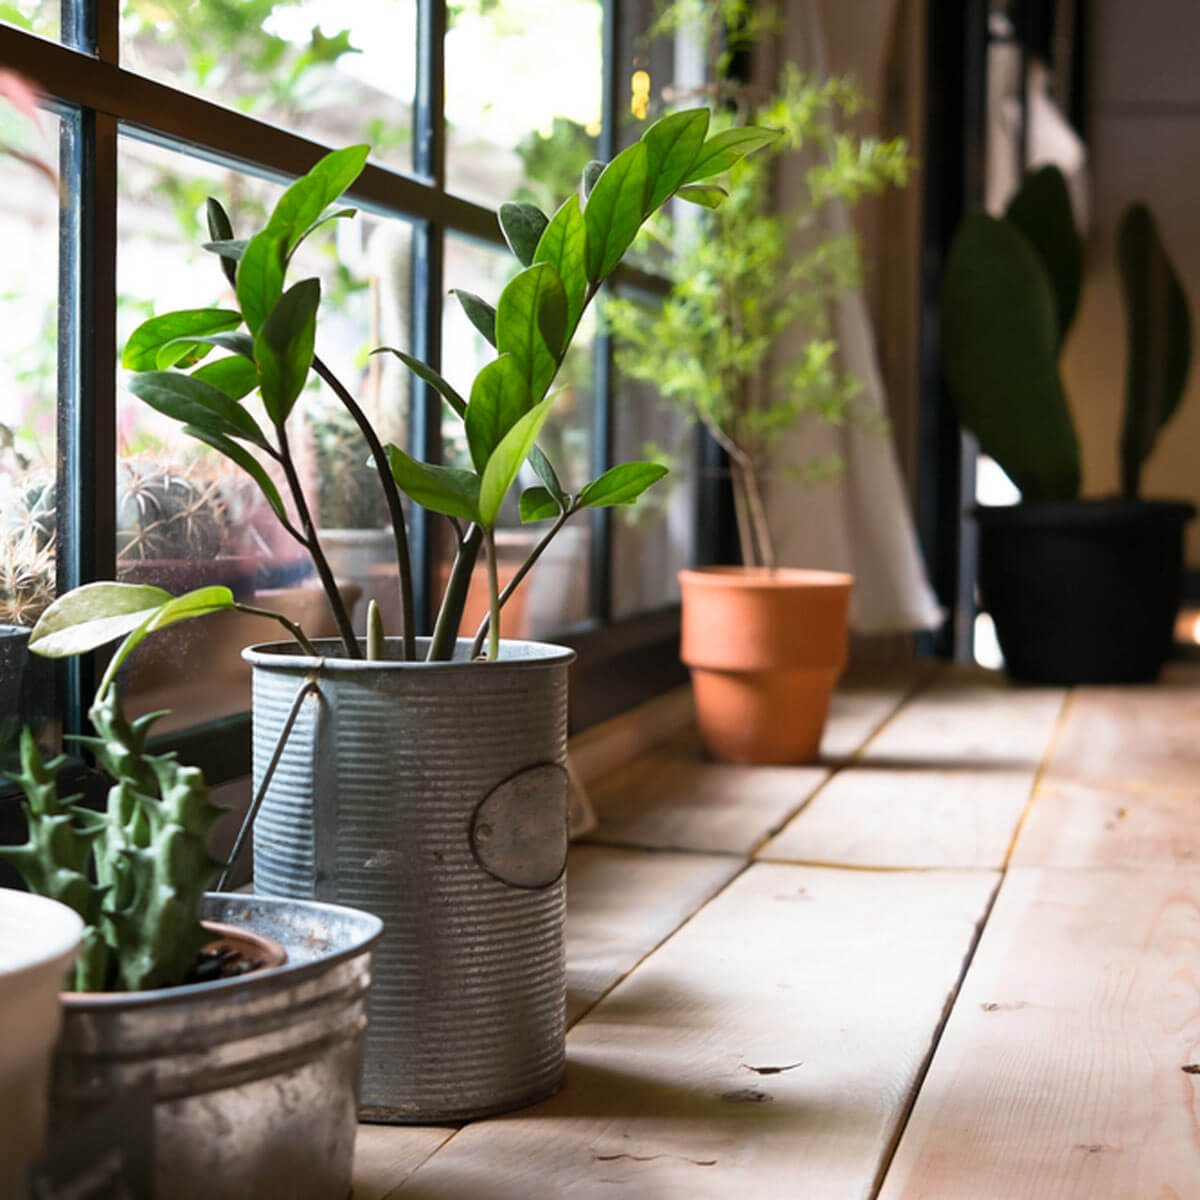 14 Tips for Caring for House Plants Through Winter | The ... House Plant Winter on winter fragrant plants, winter potted plants, winter deck plants, winter hibiscus, winter hardy plants, winter perennial plants, winter interest plants, winter patio plants, winter outdoor plants, winter container plants, winter flowering plants, winter house cookies, great winter plants, winter yard plants, winter porch plants, winter planter plants, winter house art, winter shade plants, winter blooming plants, winter house landscaping,